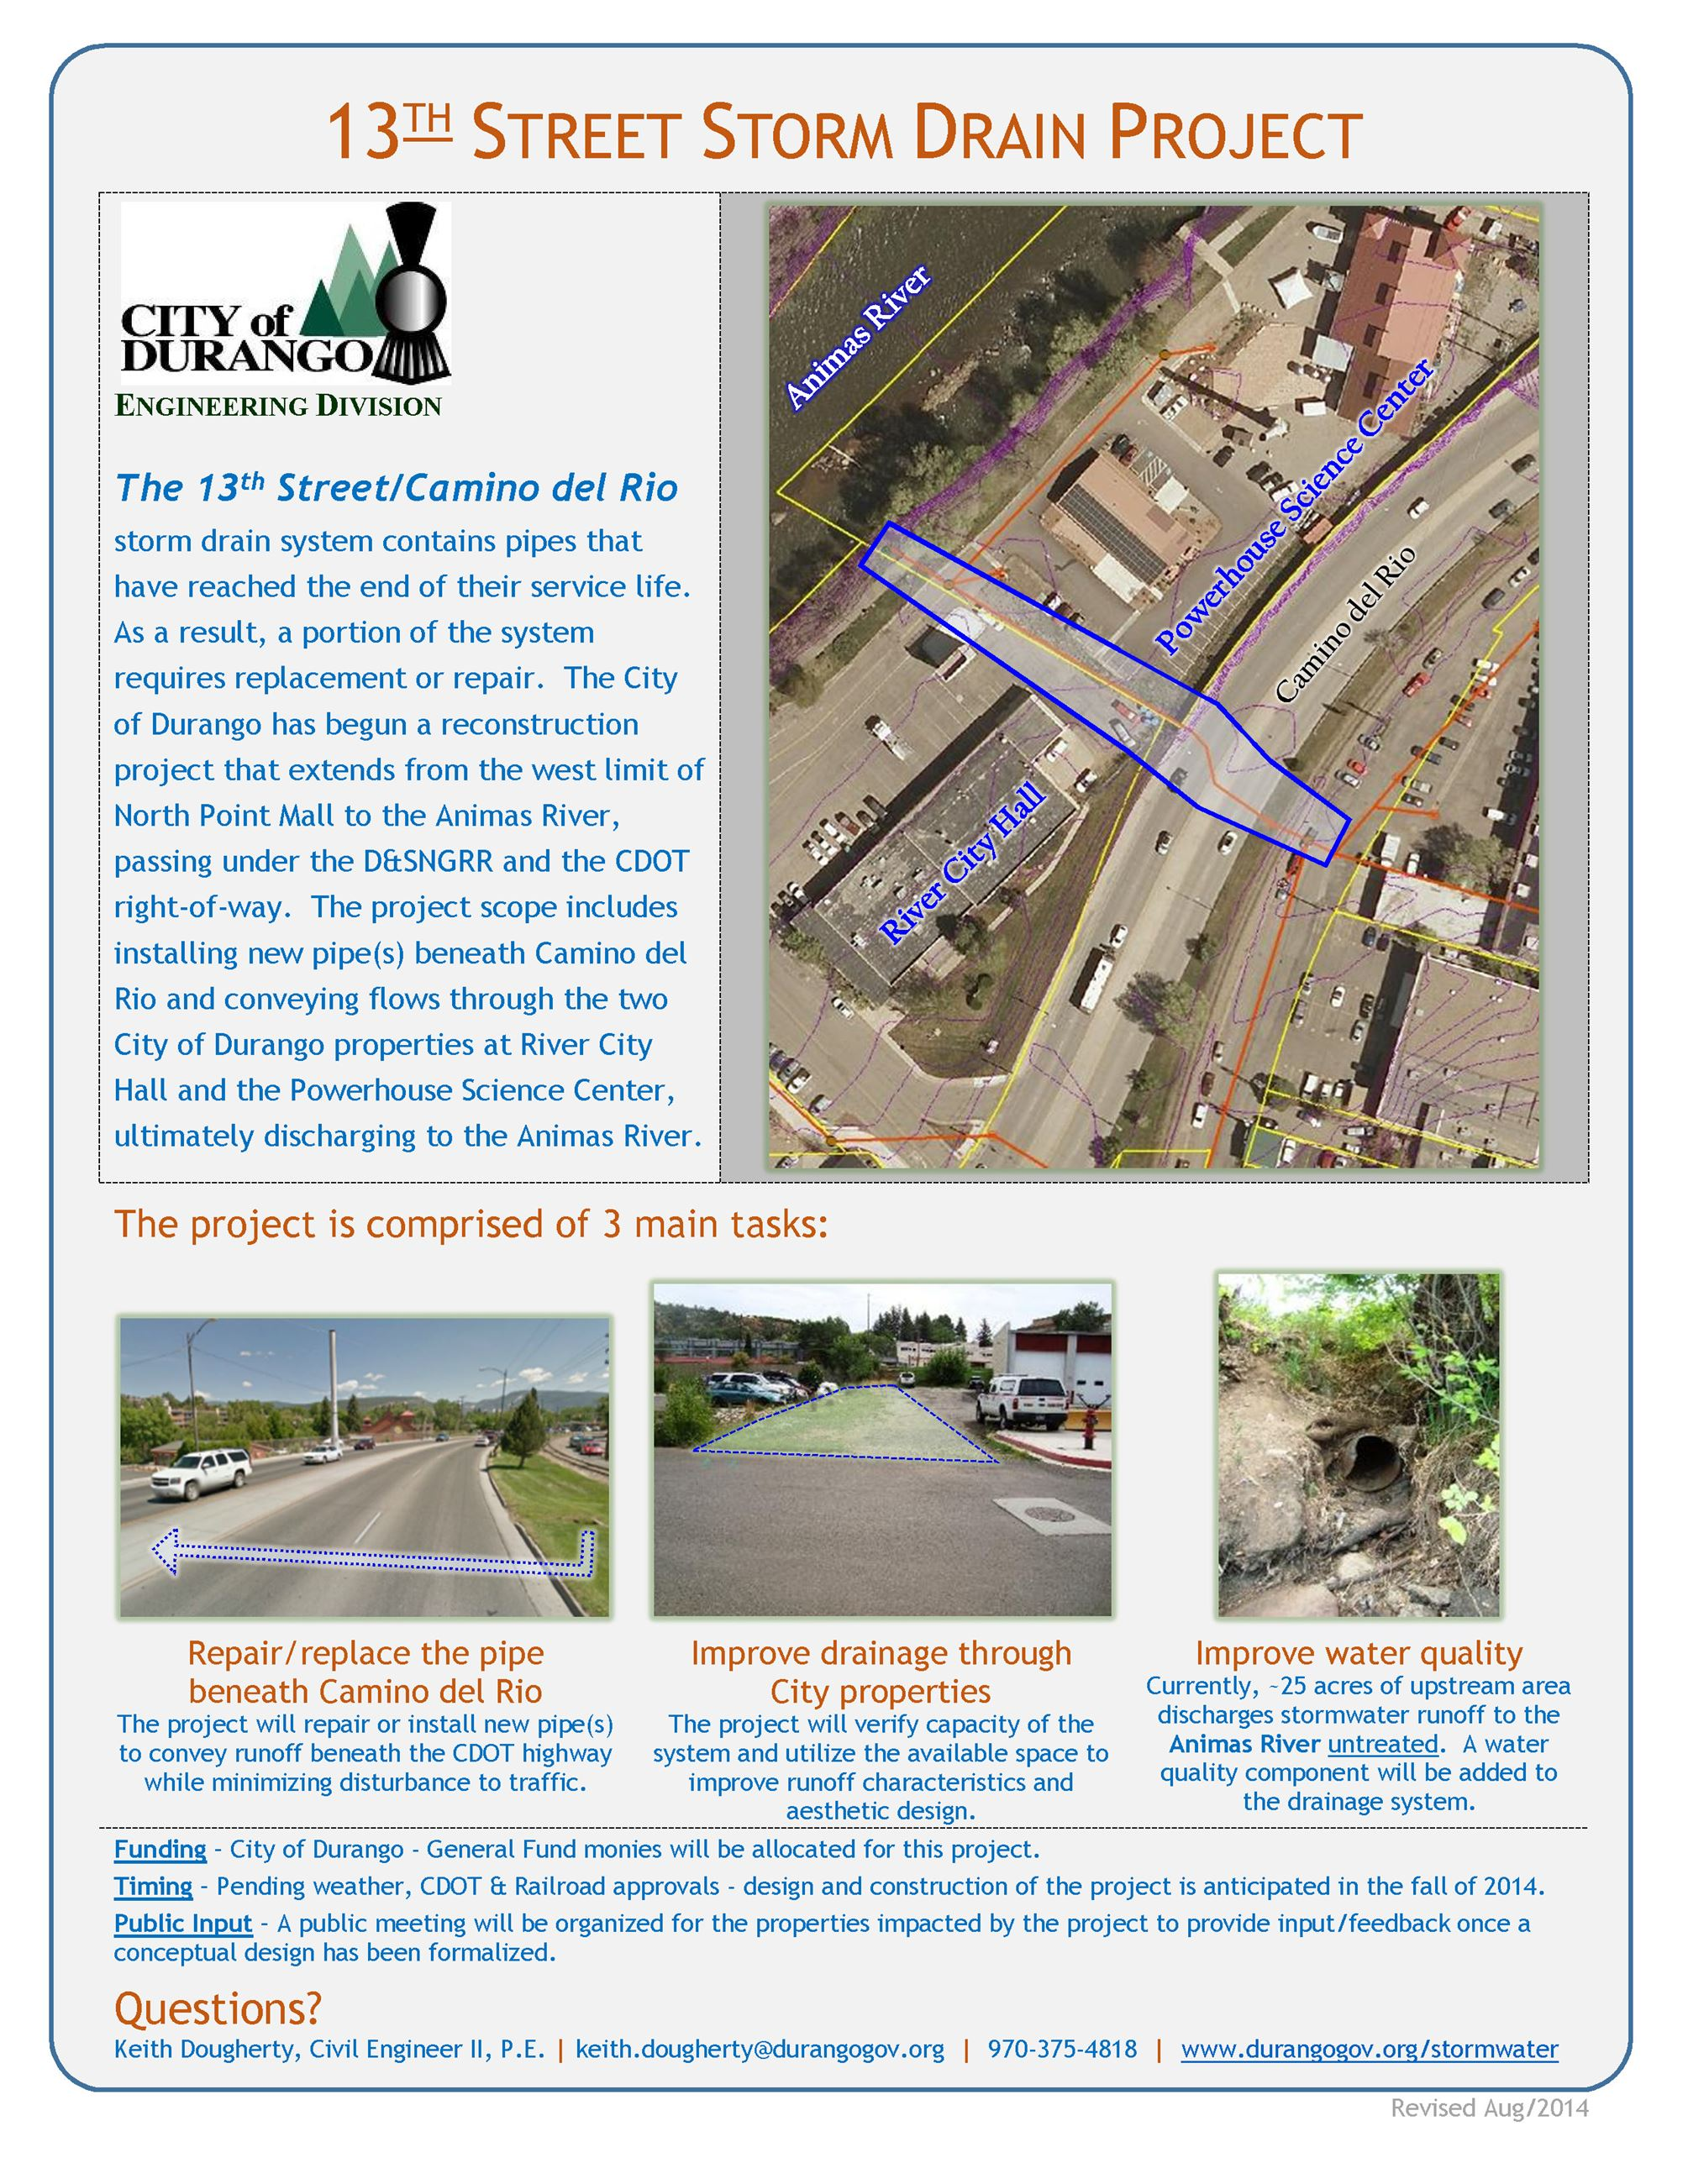 13th Street Storm Project Flyer